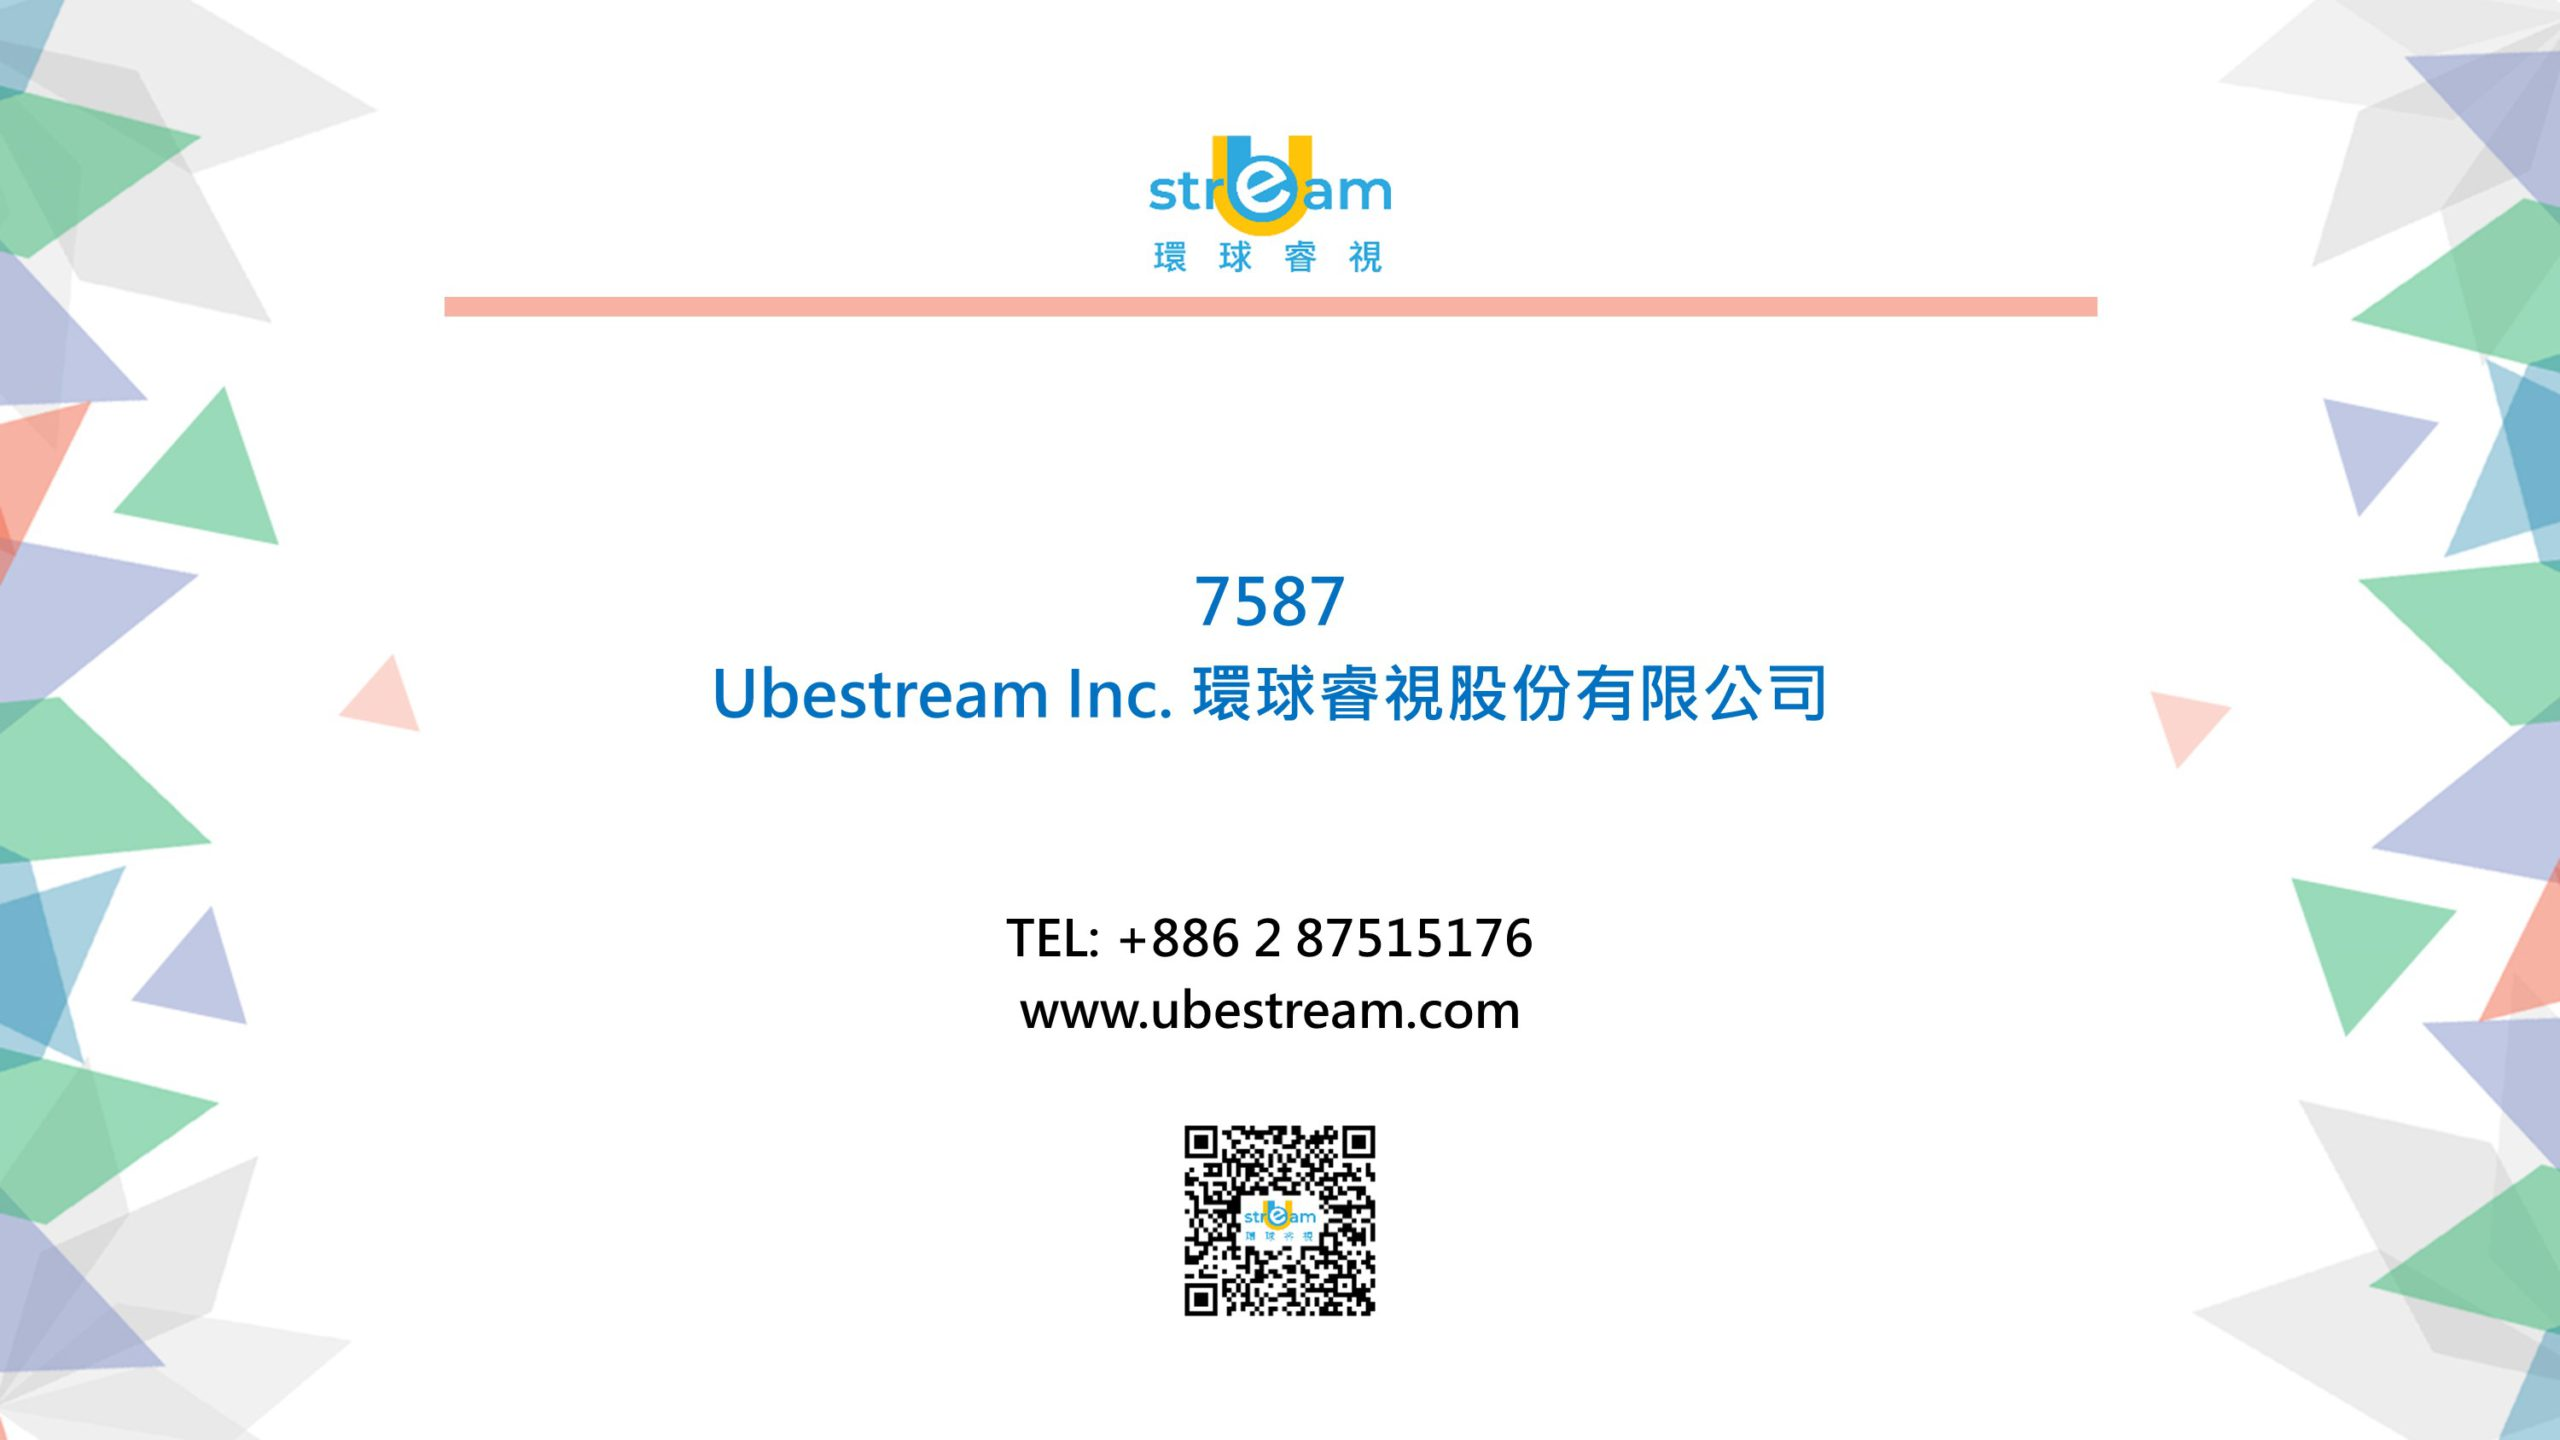 Ubestream is listing on the startup board in Taipei Exchange in Taiwan (7587).